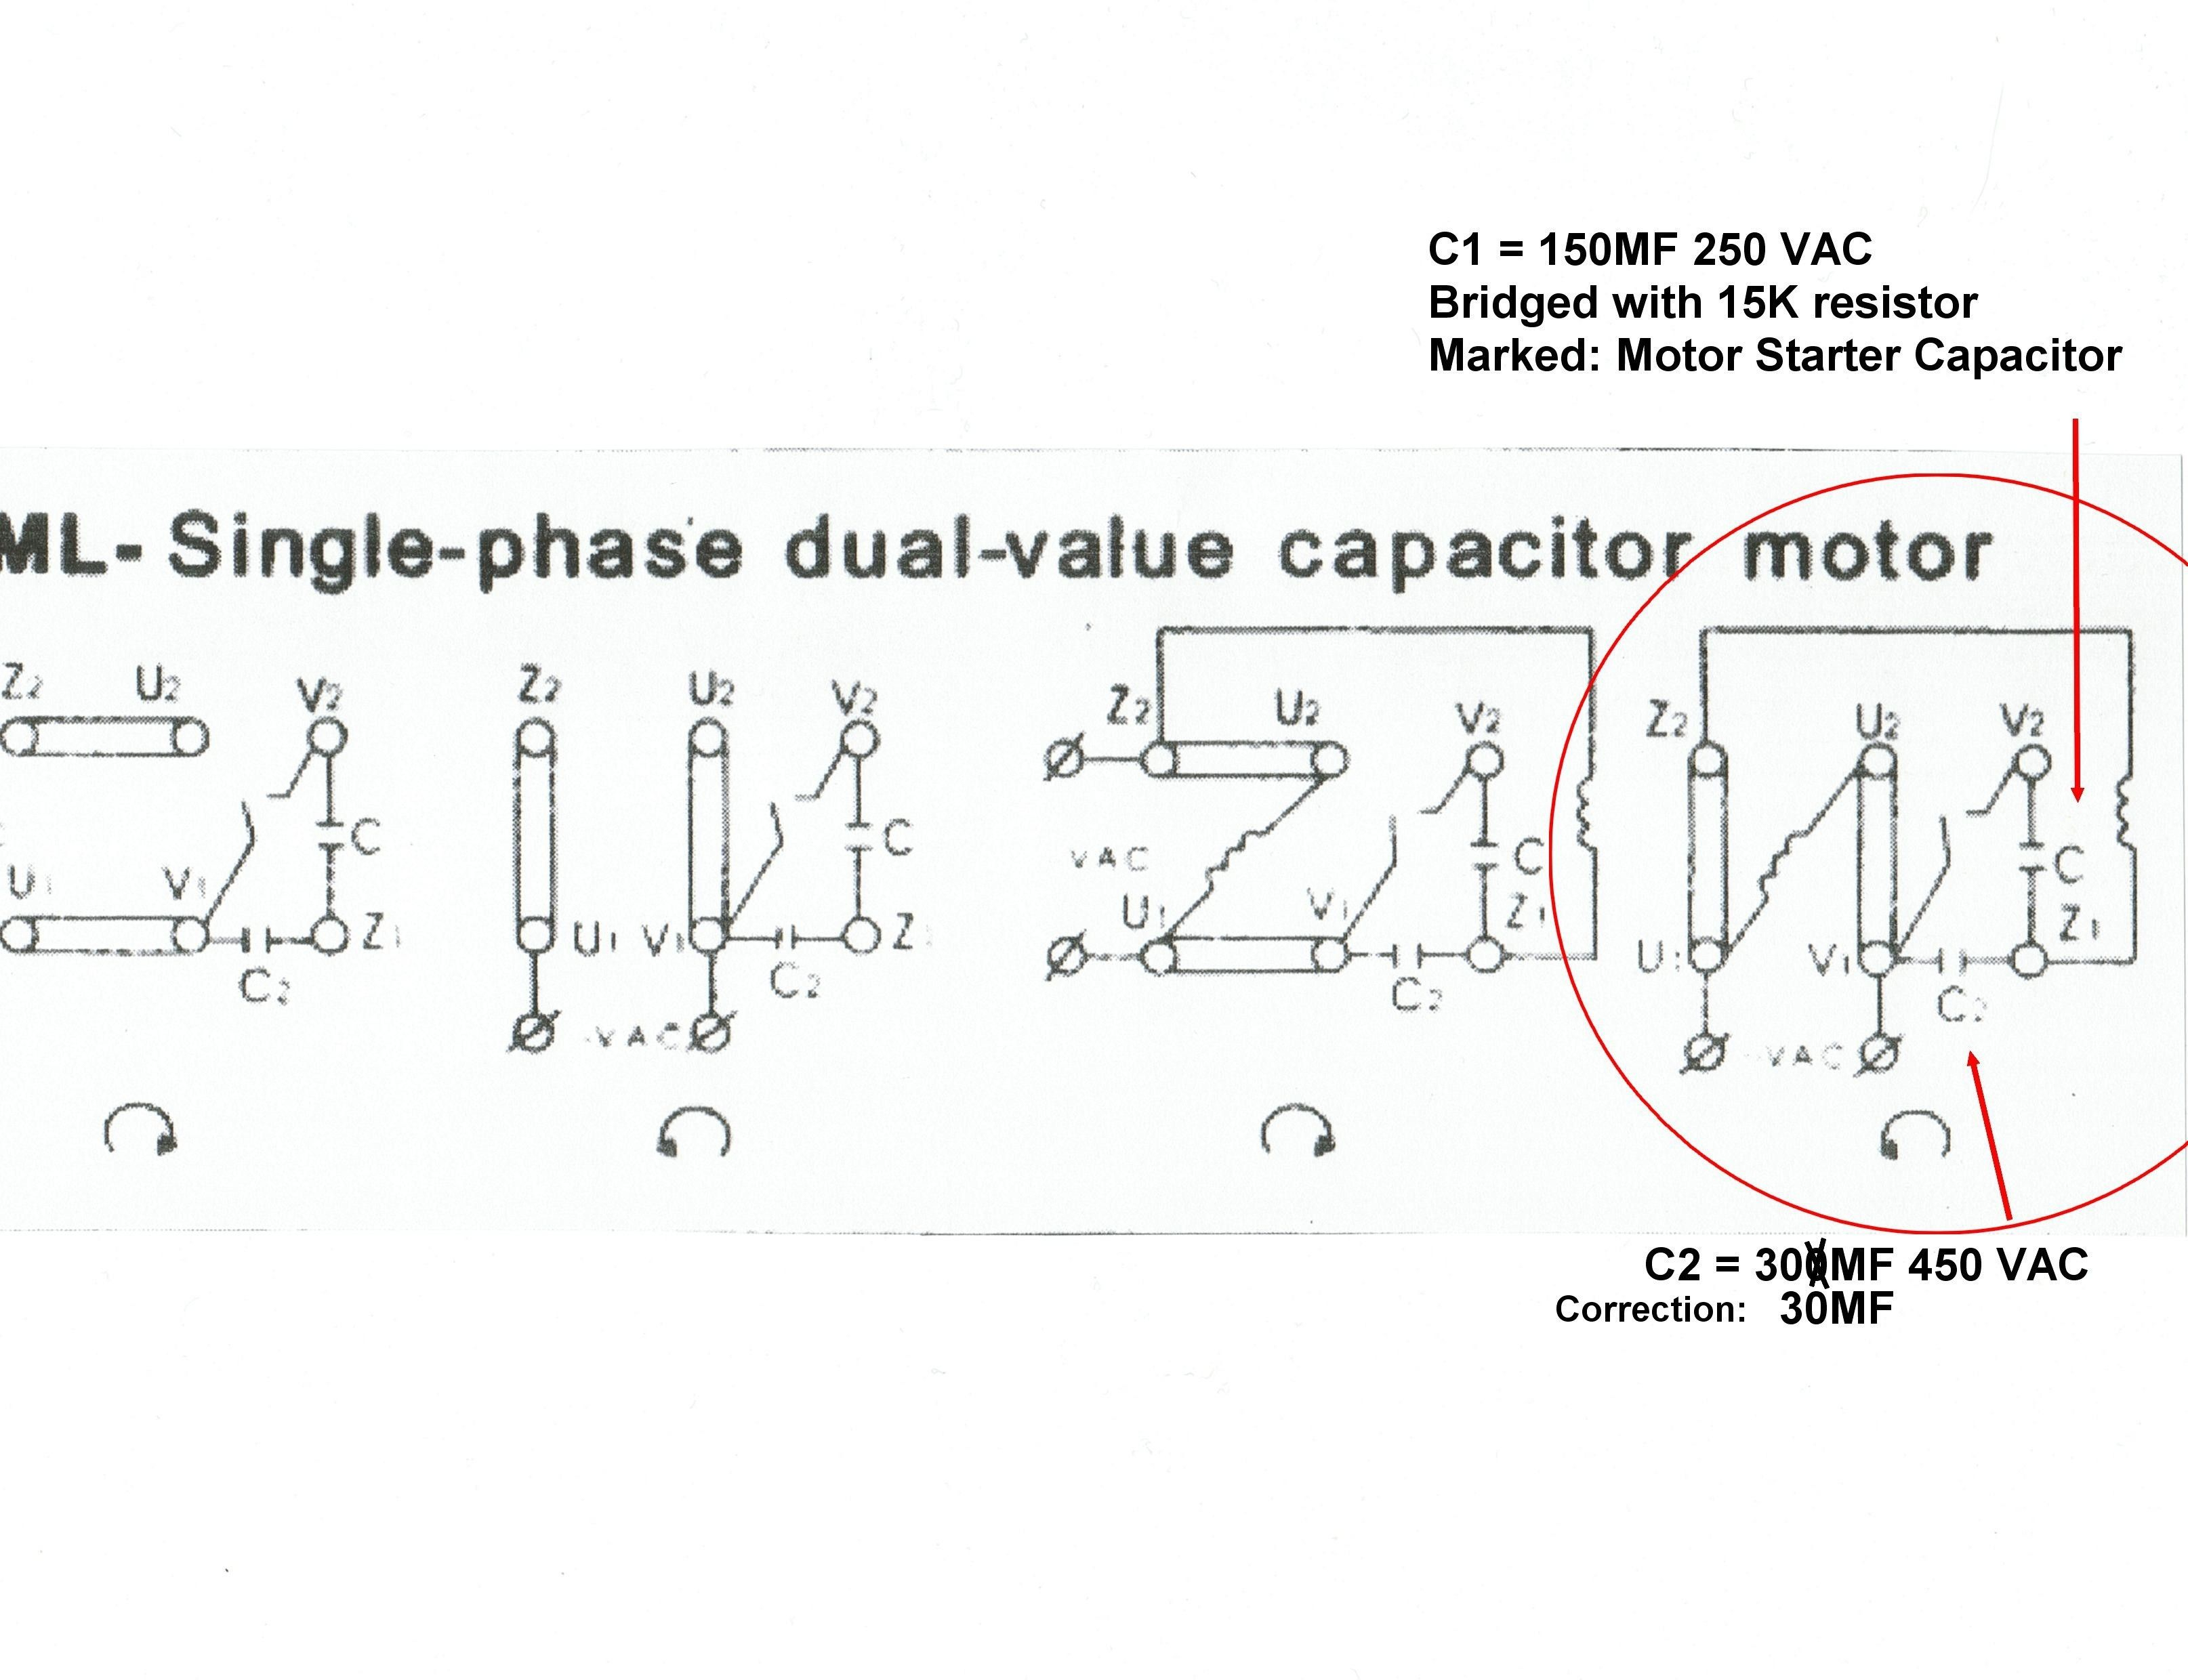 Wiring Diagram Single Phase Motor 6 Lead | Wiring Diagram - 6 Lead Single Phase Motor Wiring Diagram